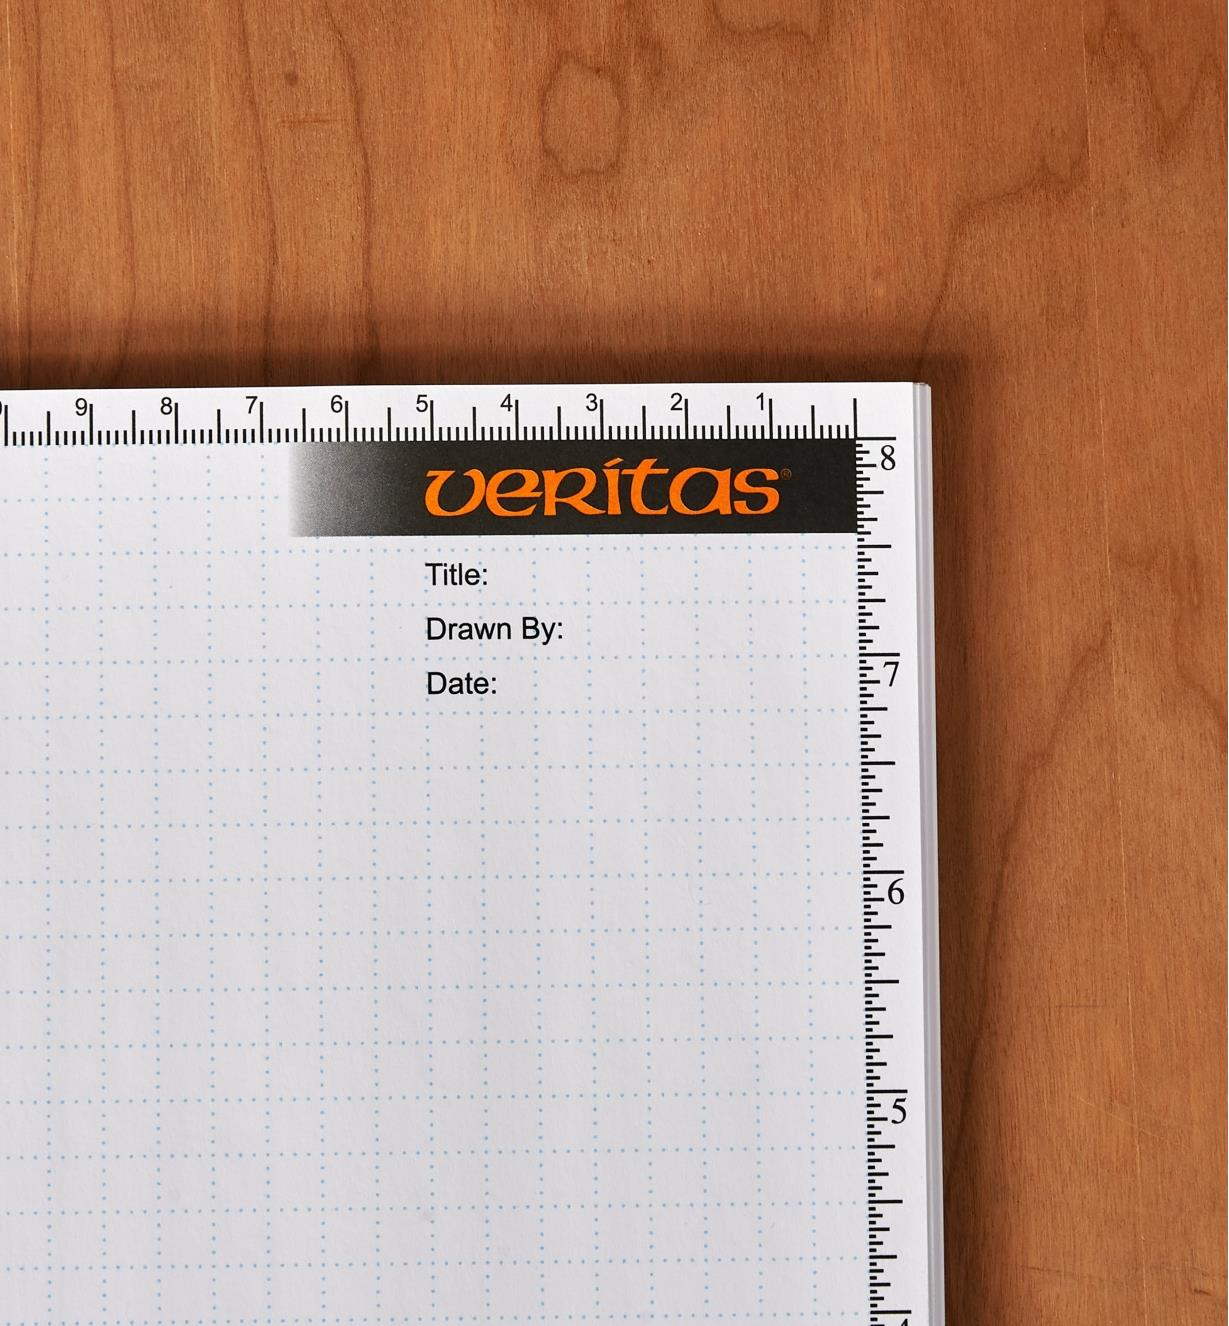 The upper right hand corner of the note pad has the Veritas logo, and a place to fill in name, drawn by and date.